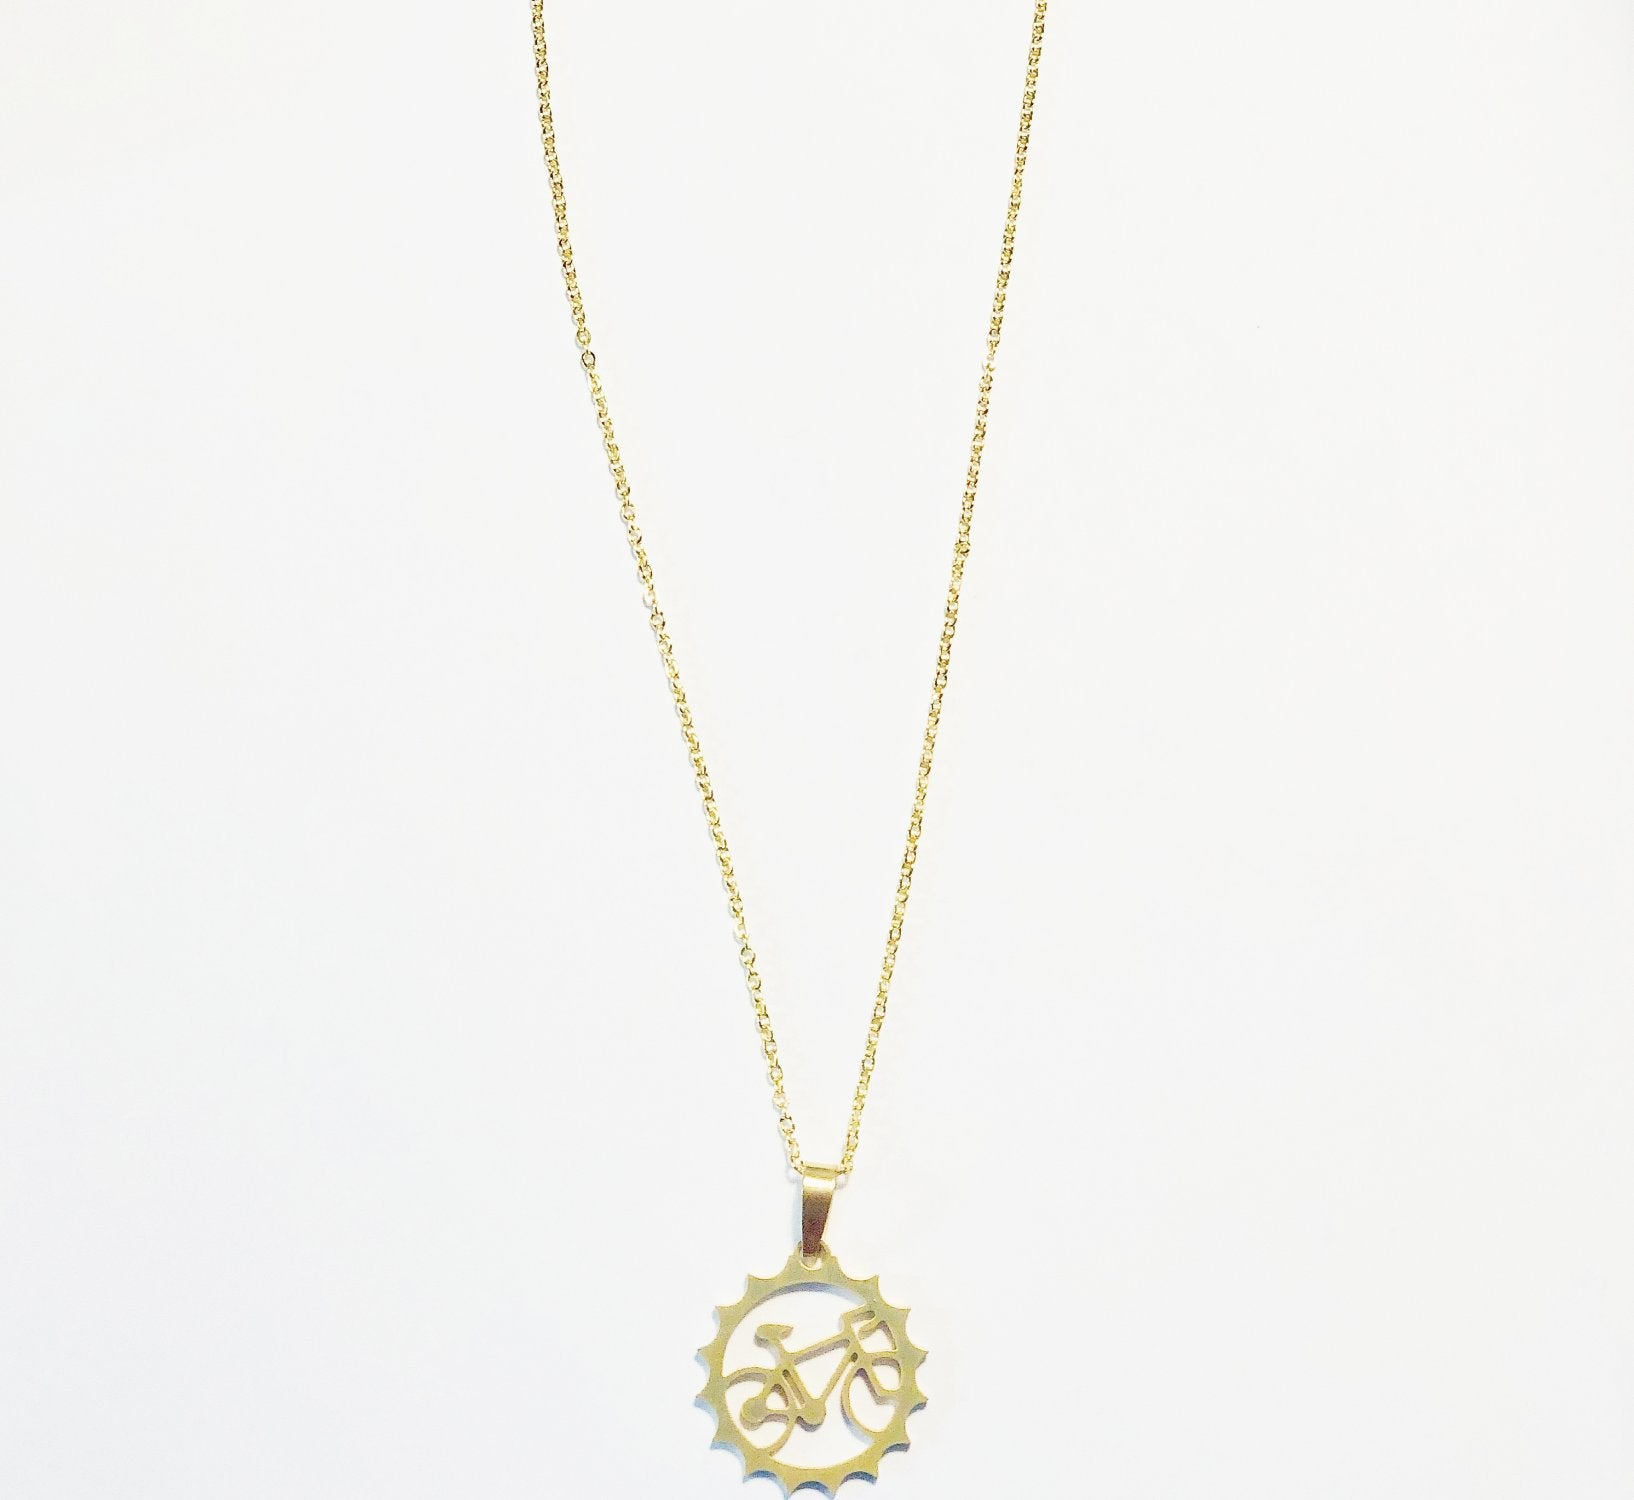 Jewelry Circle Bike Necklace - Pedal Chic